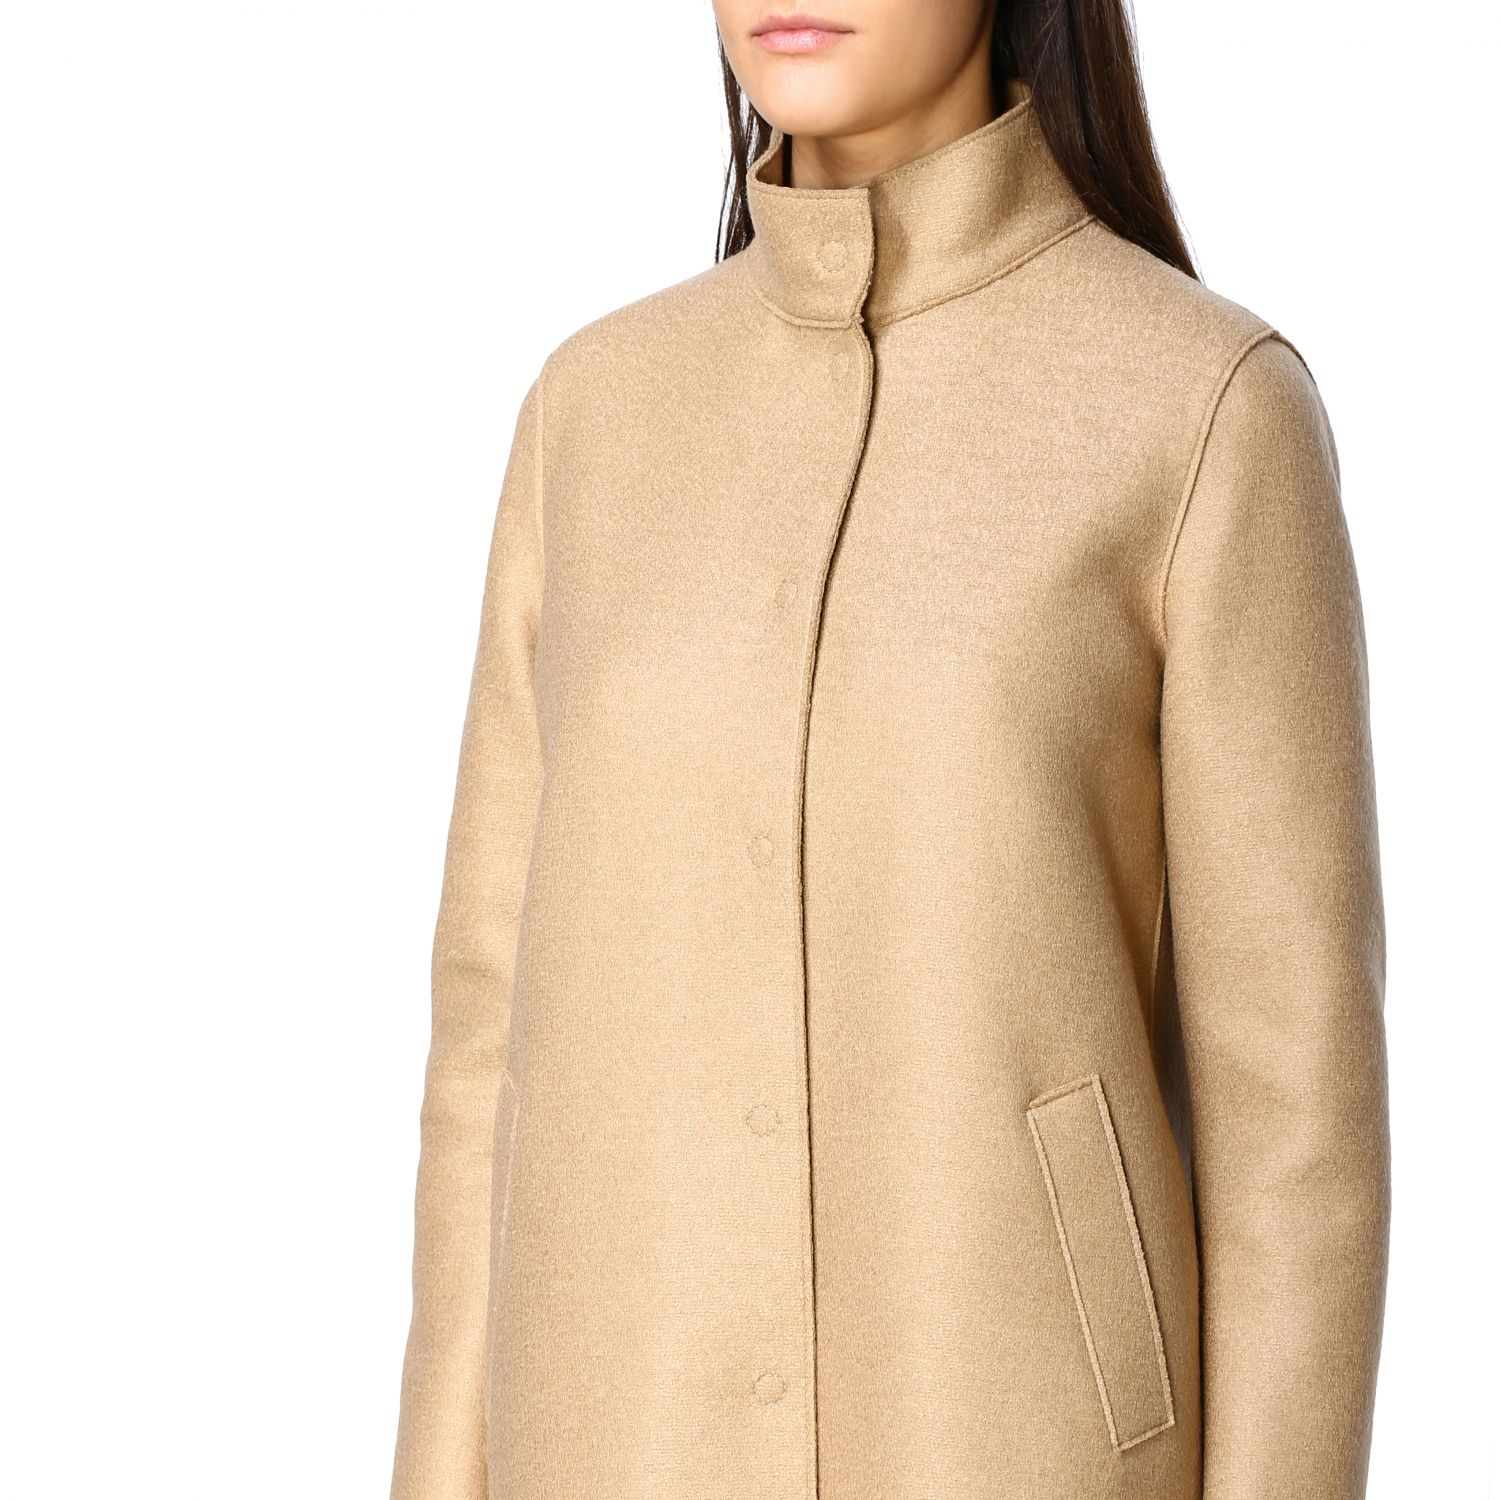 Coat women Harris Wharf London natural 5